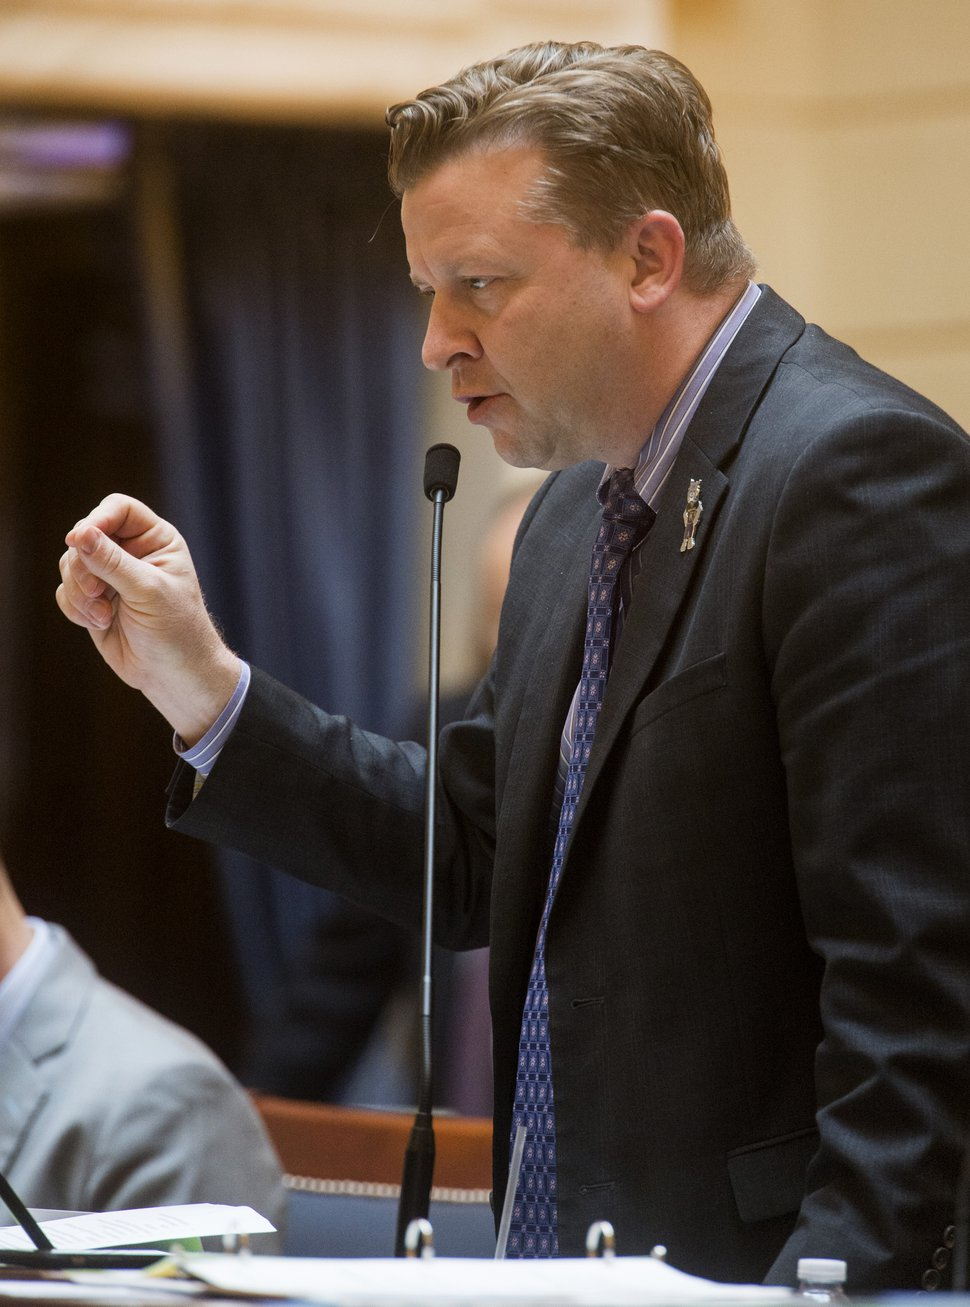 (Rick Egan | The Salt Lake Tribune) Sen. Todd Weiler argues a bill in the Utah Senate, Thursday, Feb. 1, 2018.